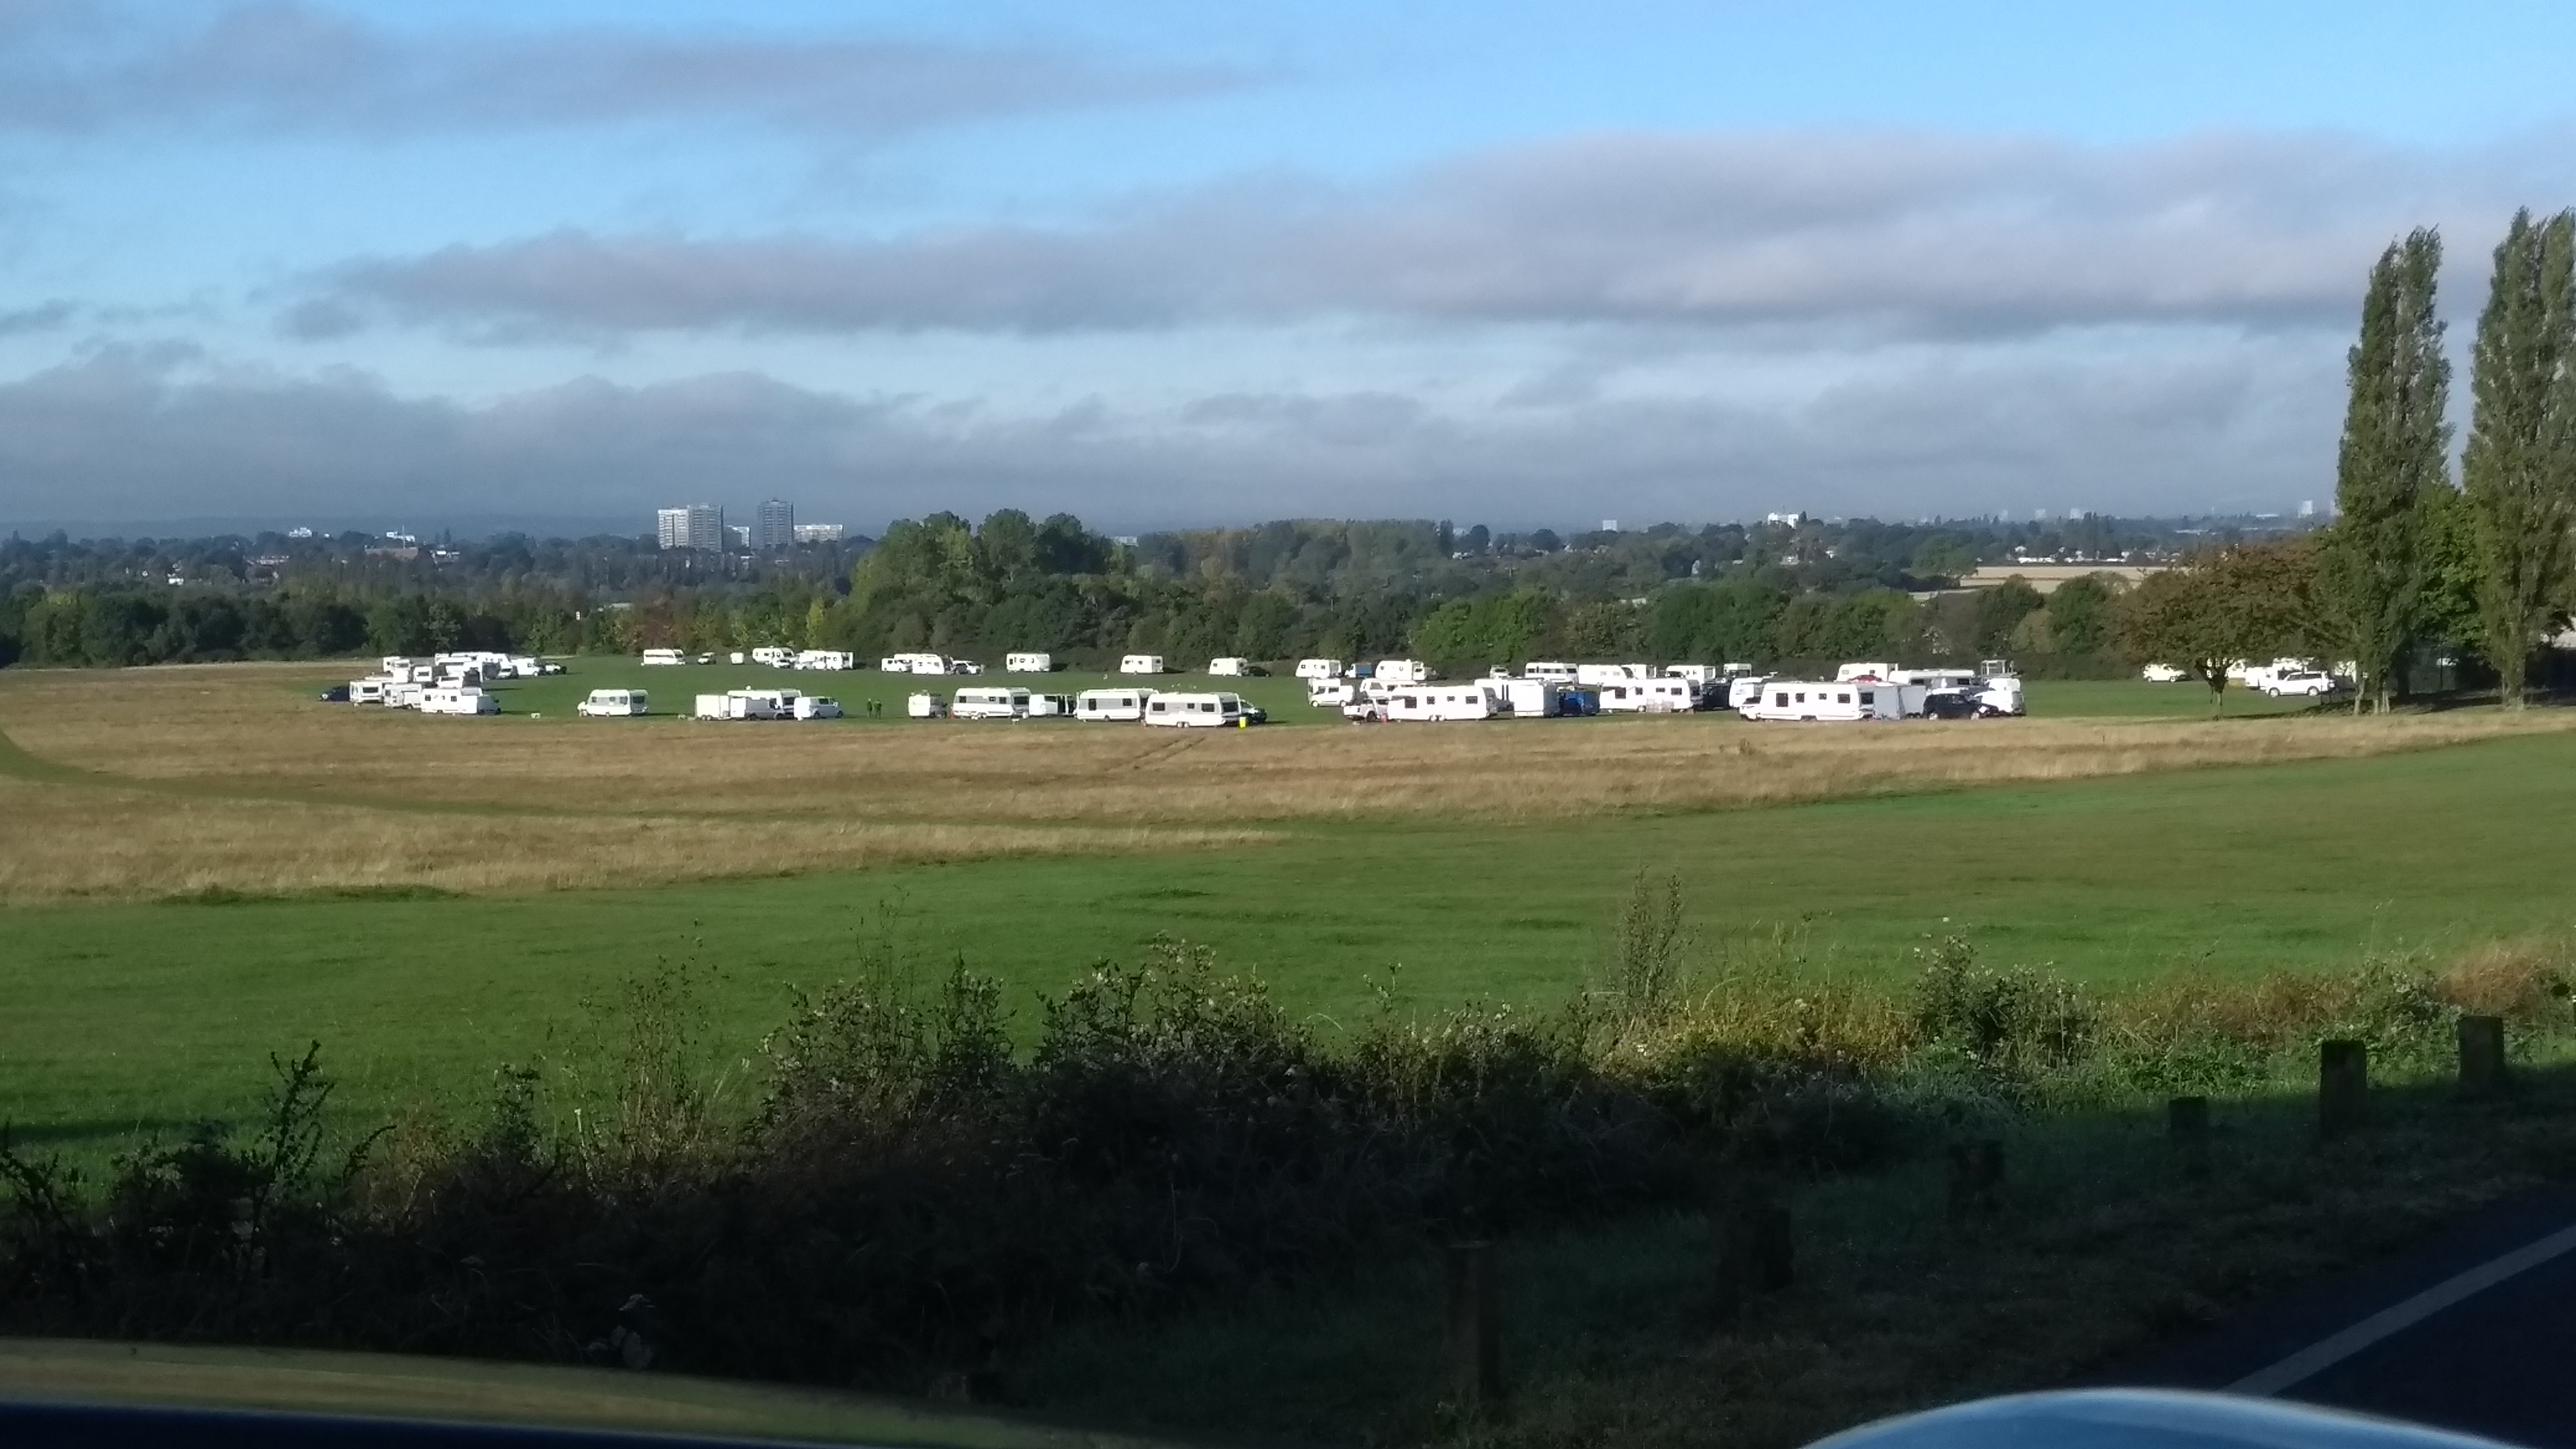 Walsall Council must answer questions on unauthorised Traveller encampments